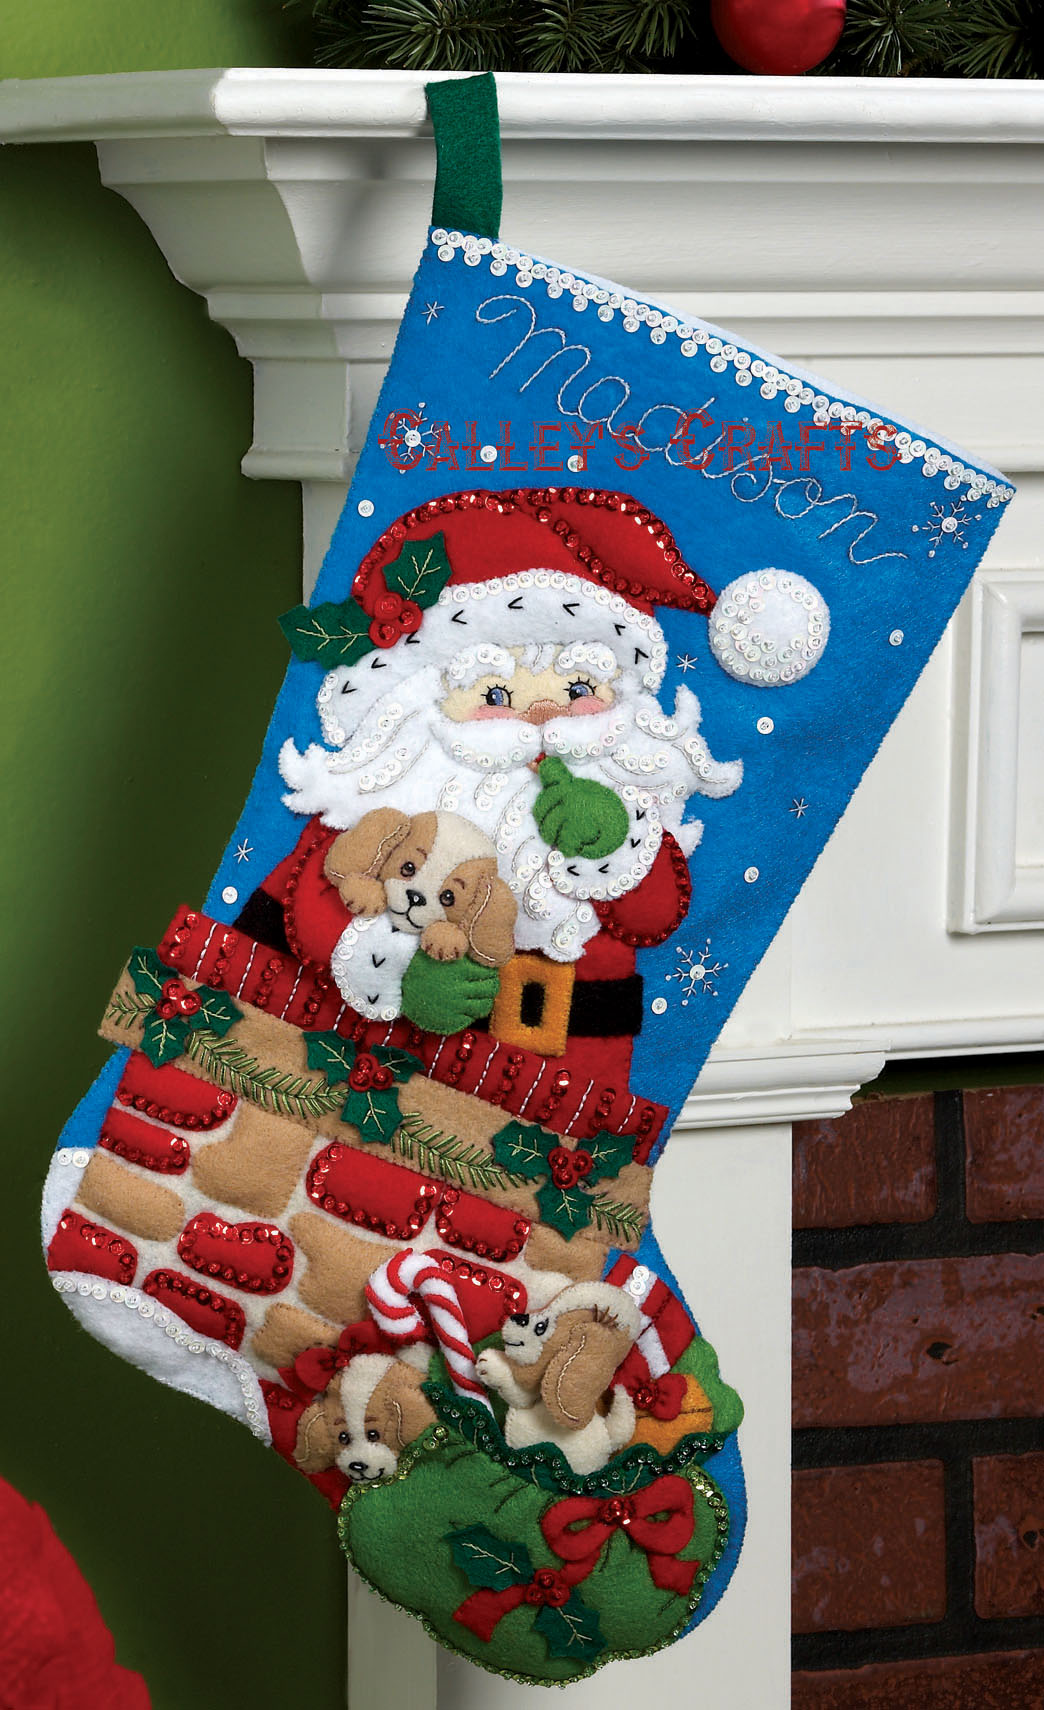 Christmas Stocking Kit.Santa S Secret 18 Bucilla Felt Christmas Stocking Kit 86280